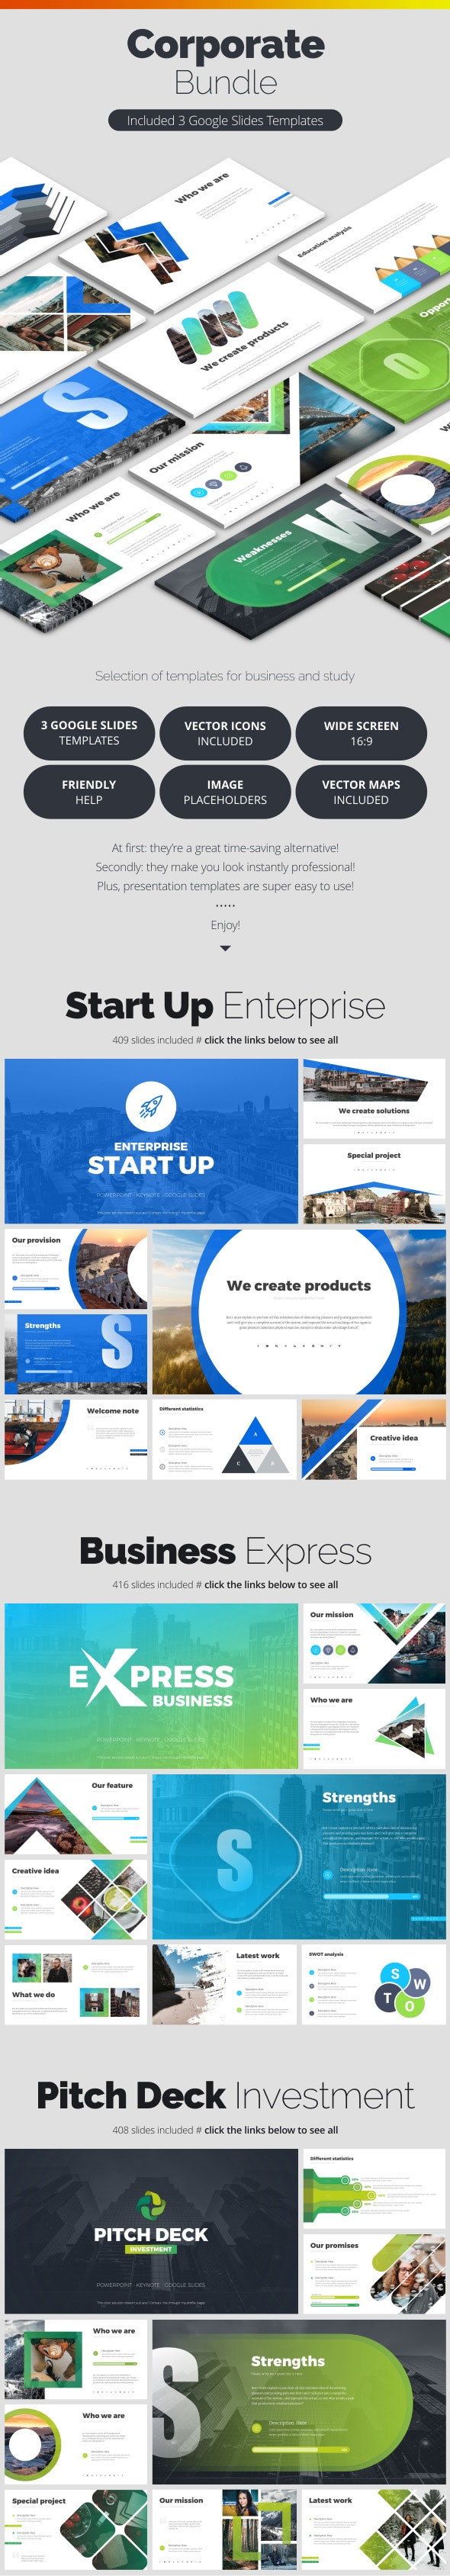 Corporate Bundle - Google Slides Presentation Templates